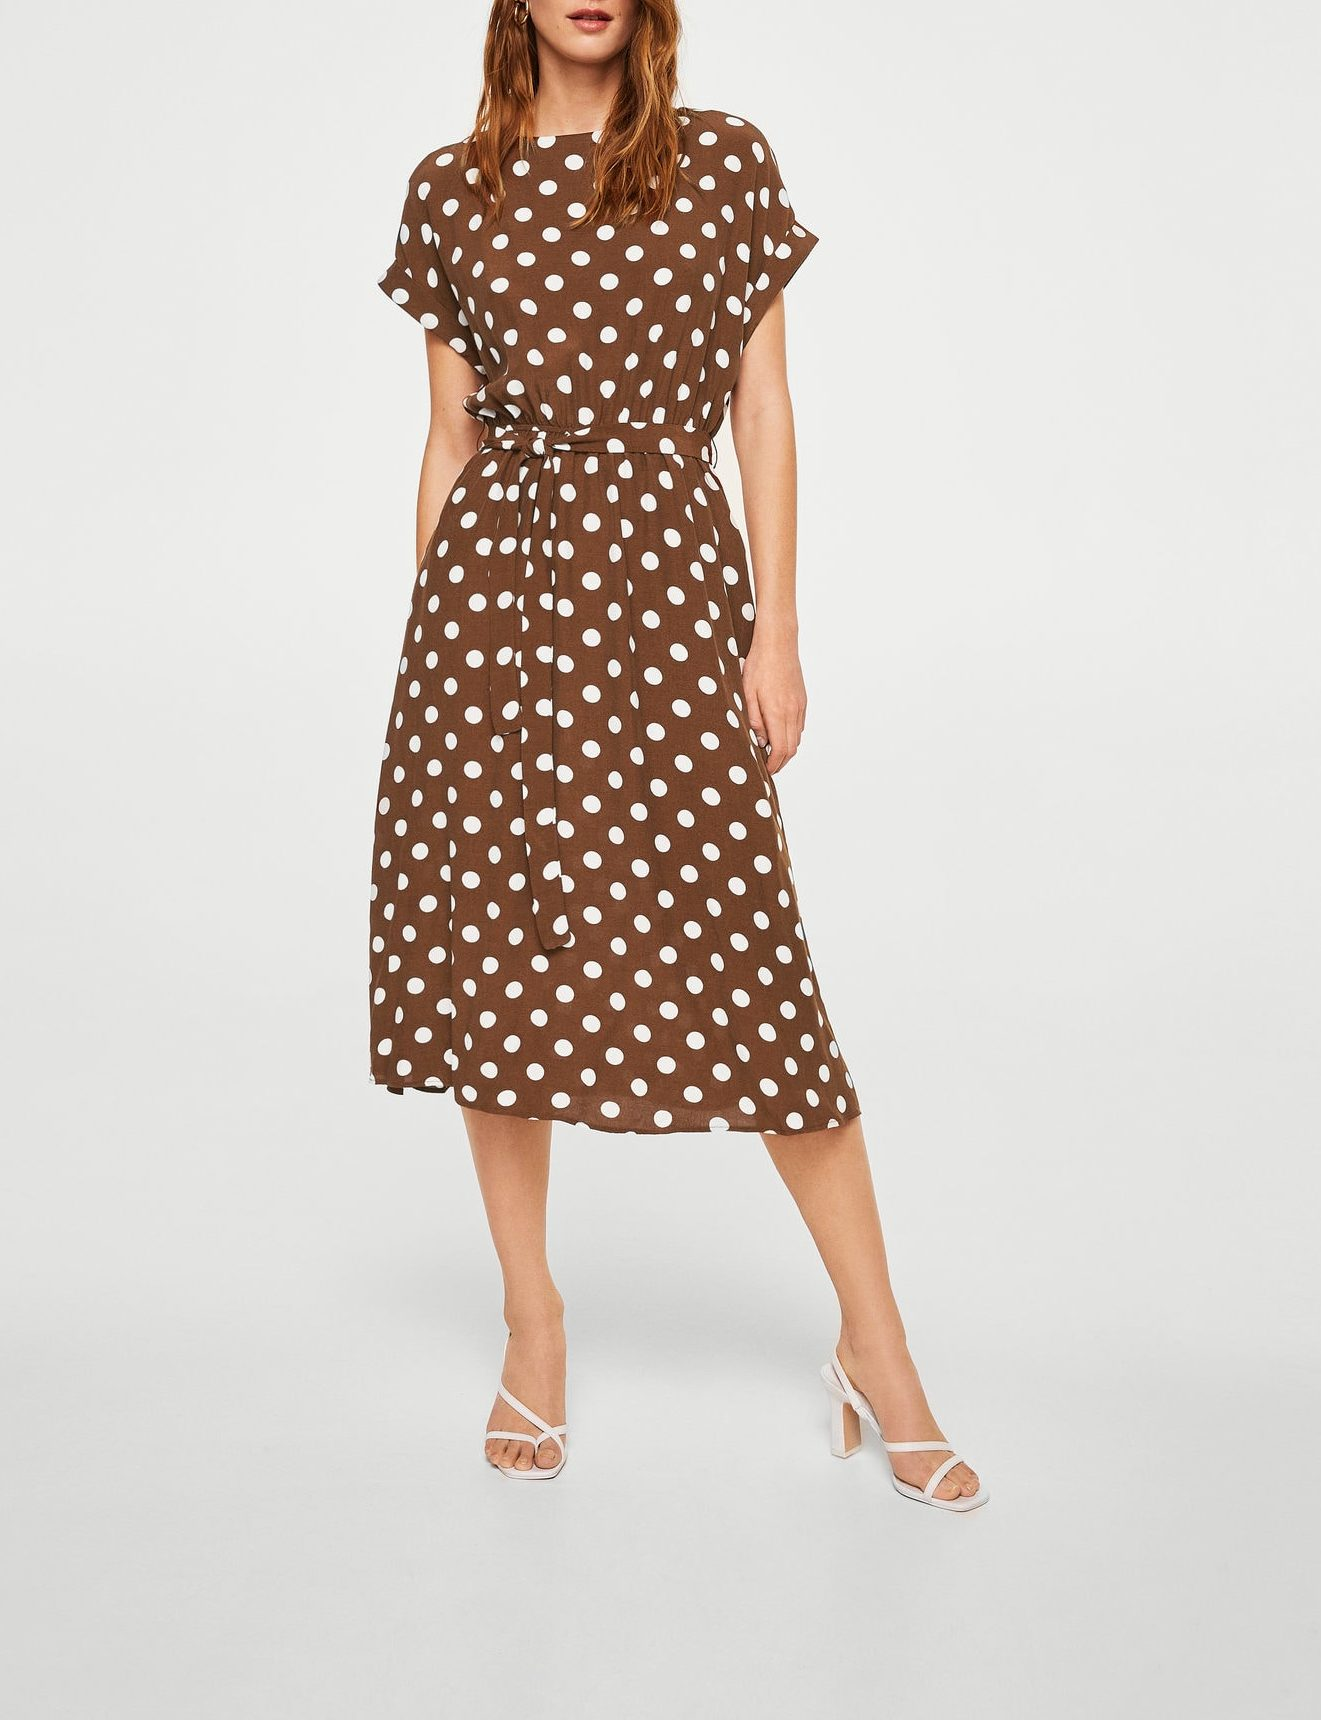 mango dot dress